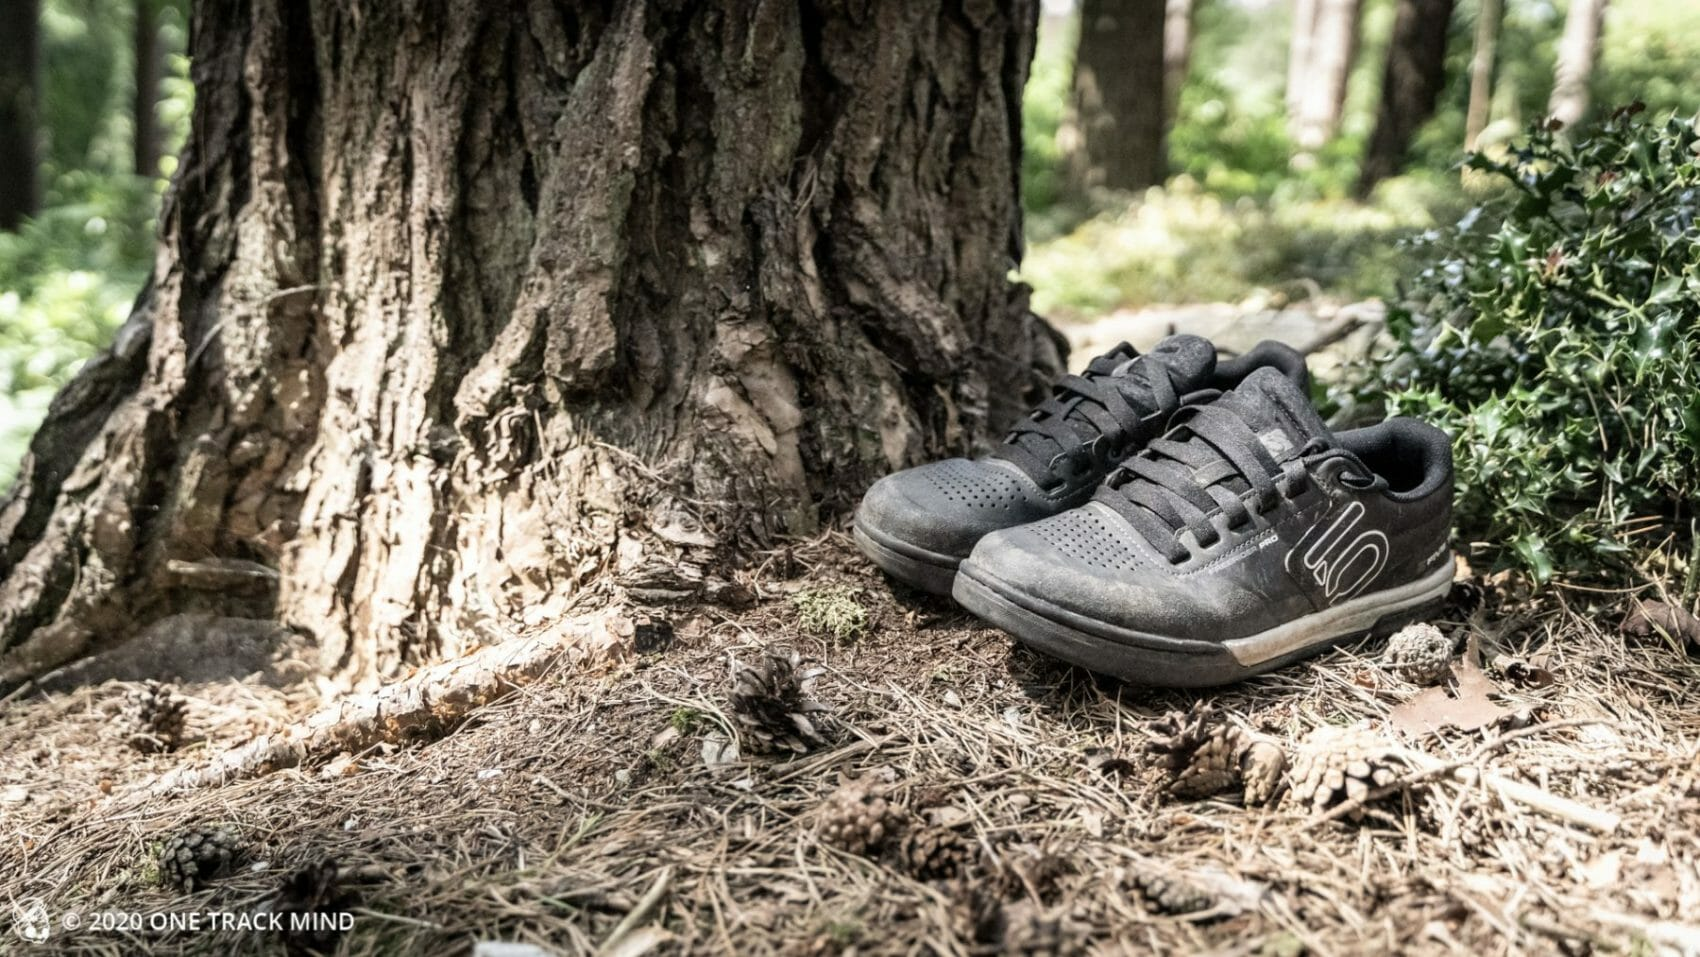 Five Ten Freerider Pro Flat Pedal MTB Shoe Review